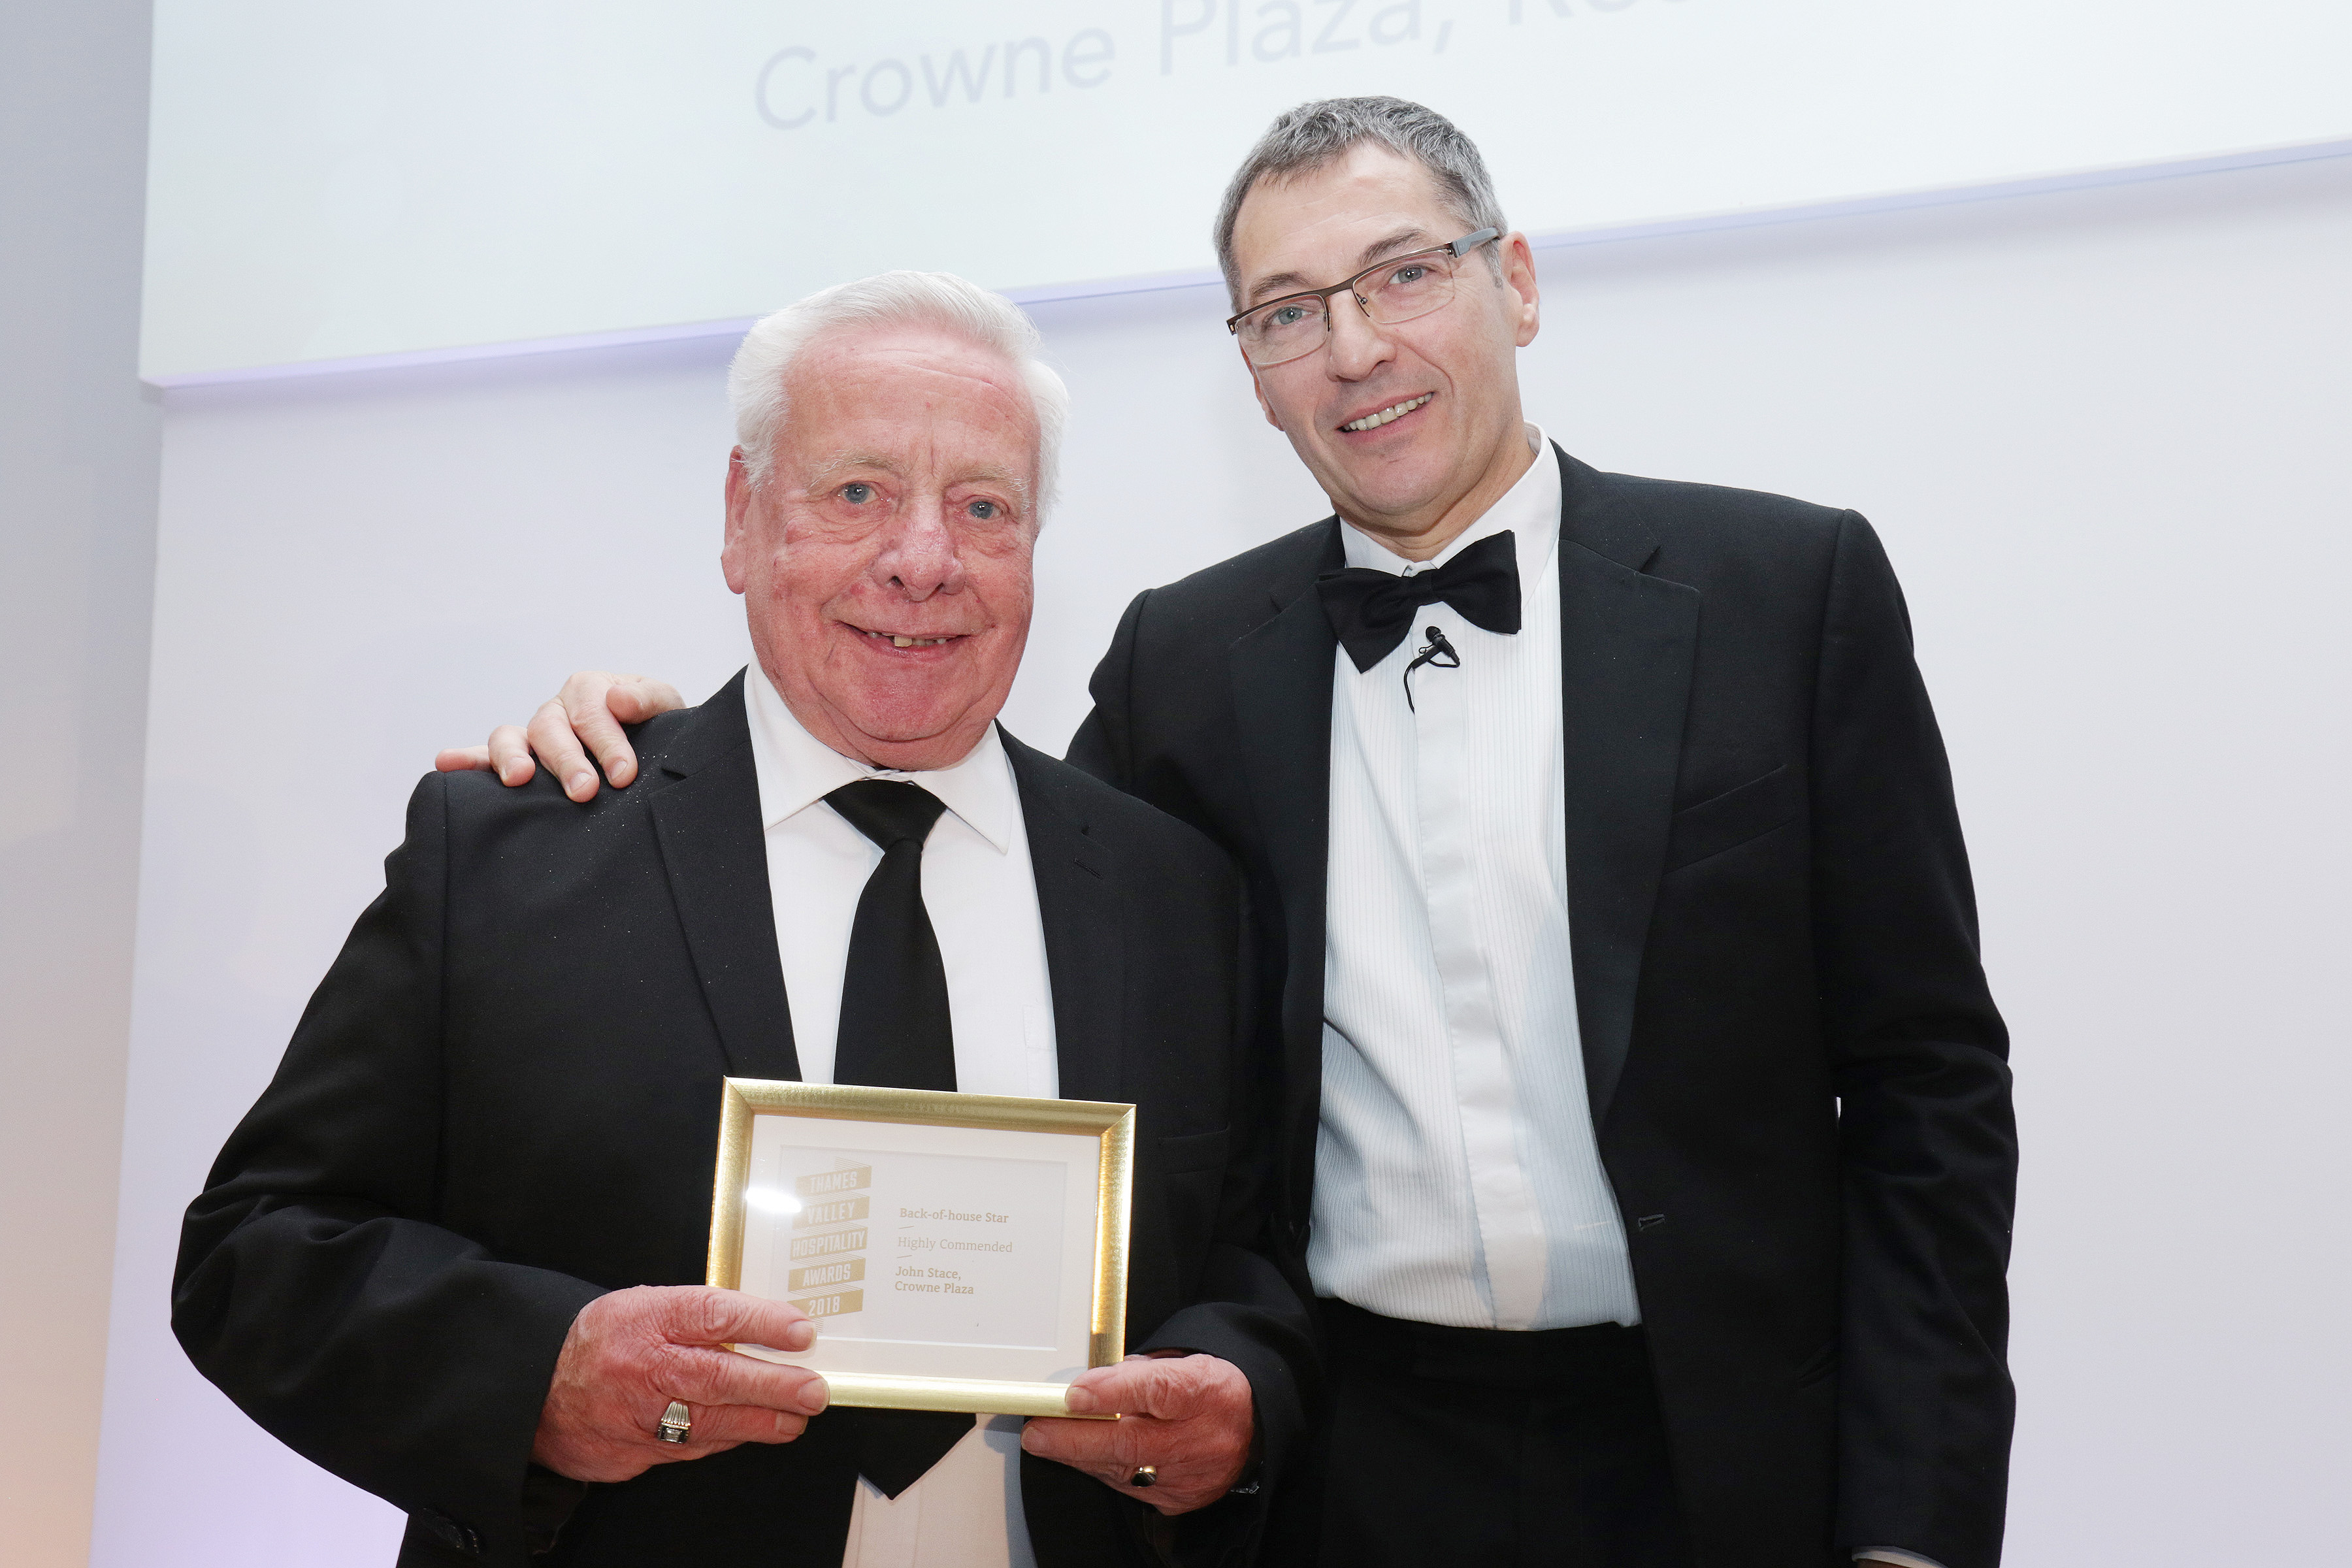 John Stace of Crowne Plaza wins bronze in Front f House star